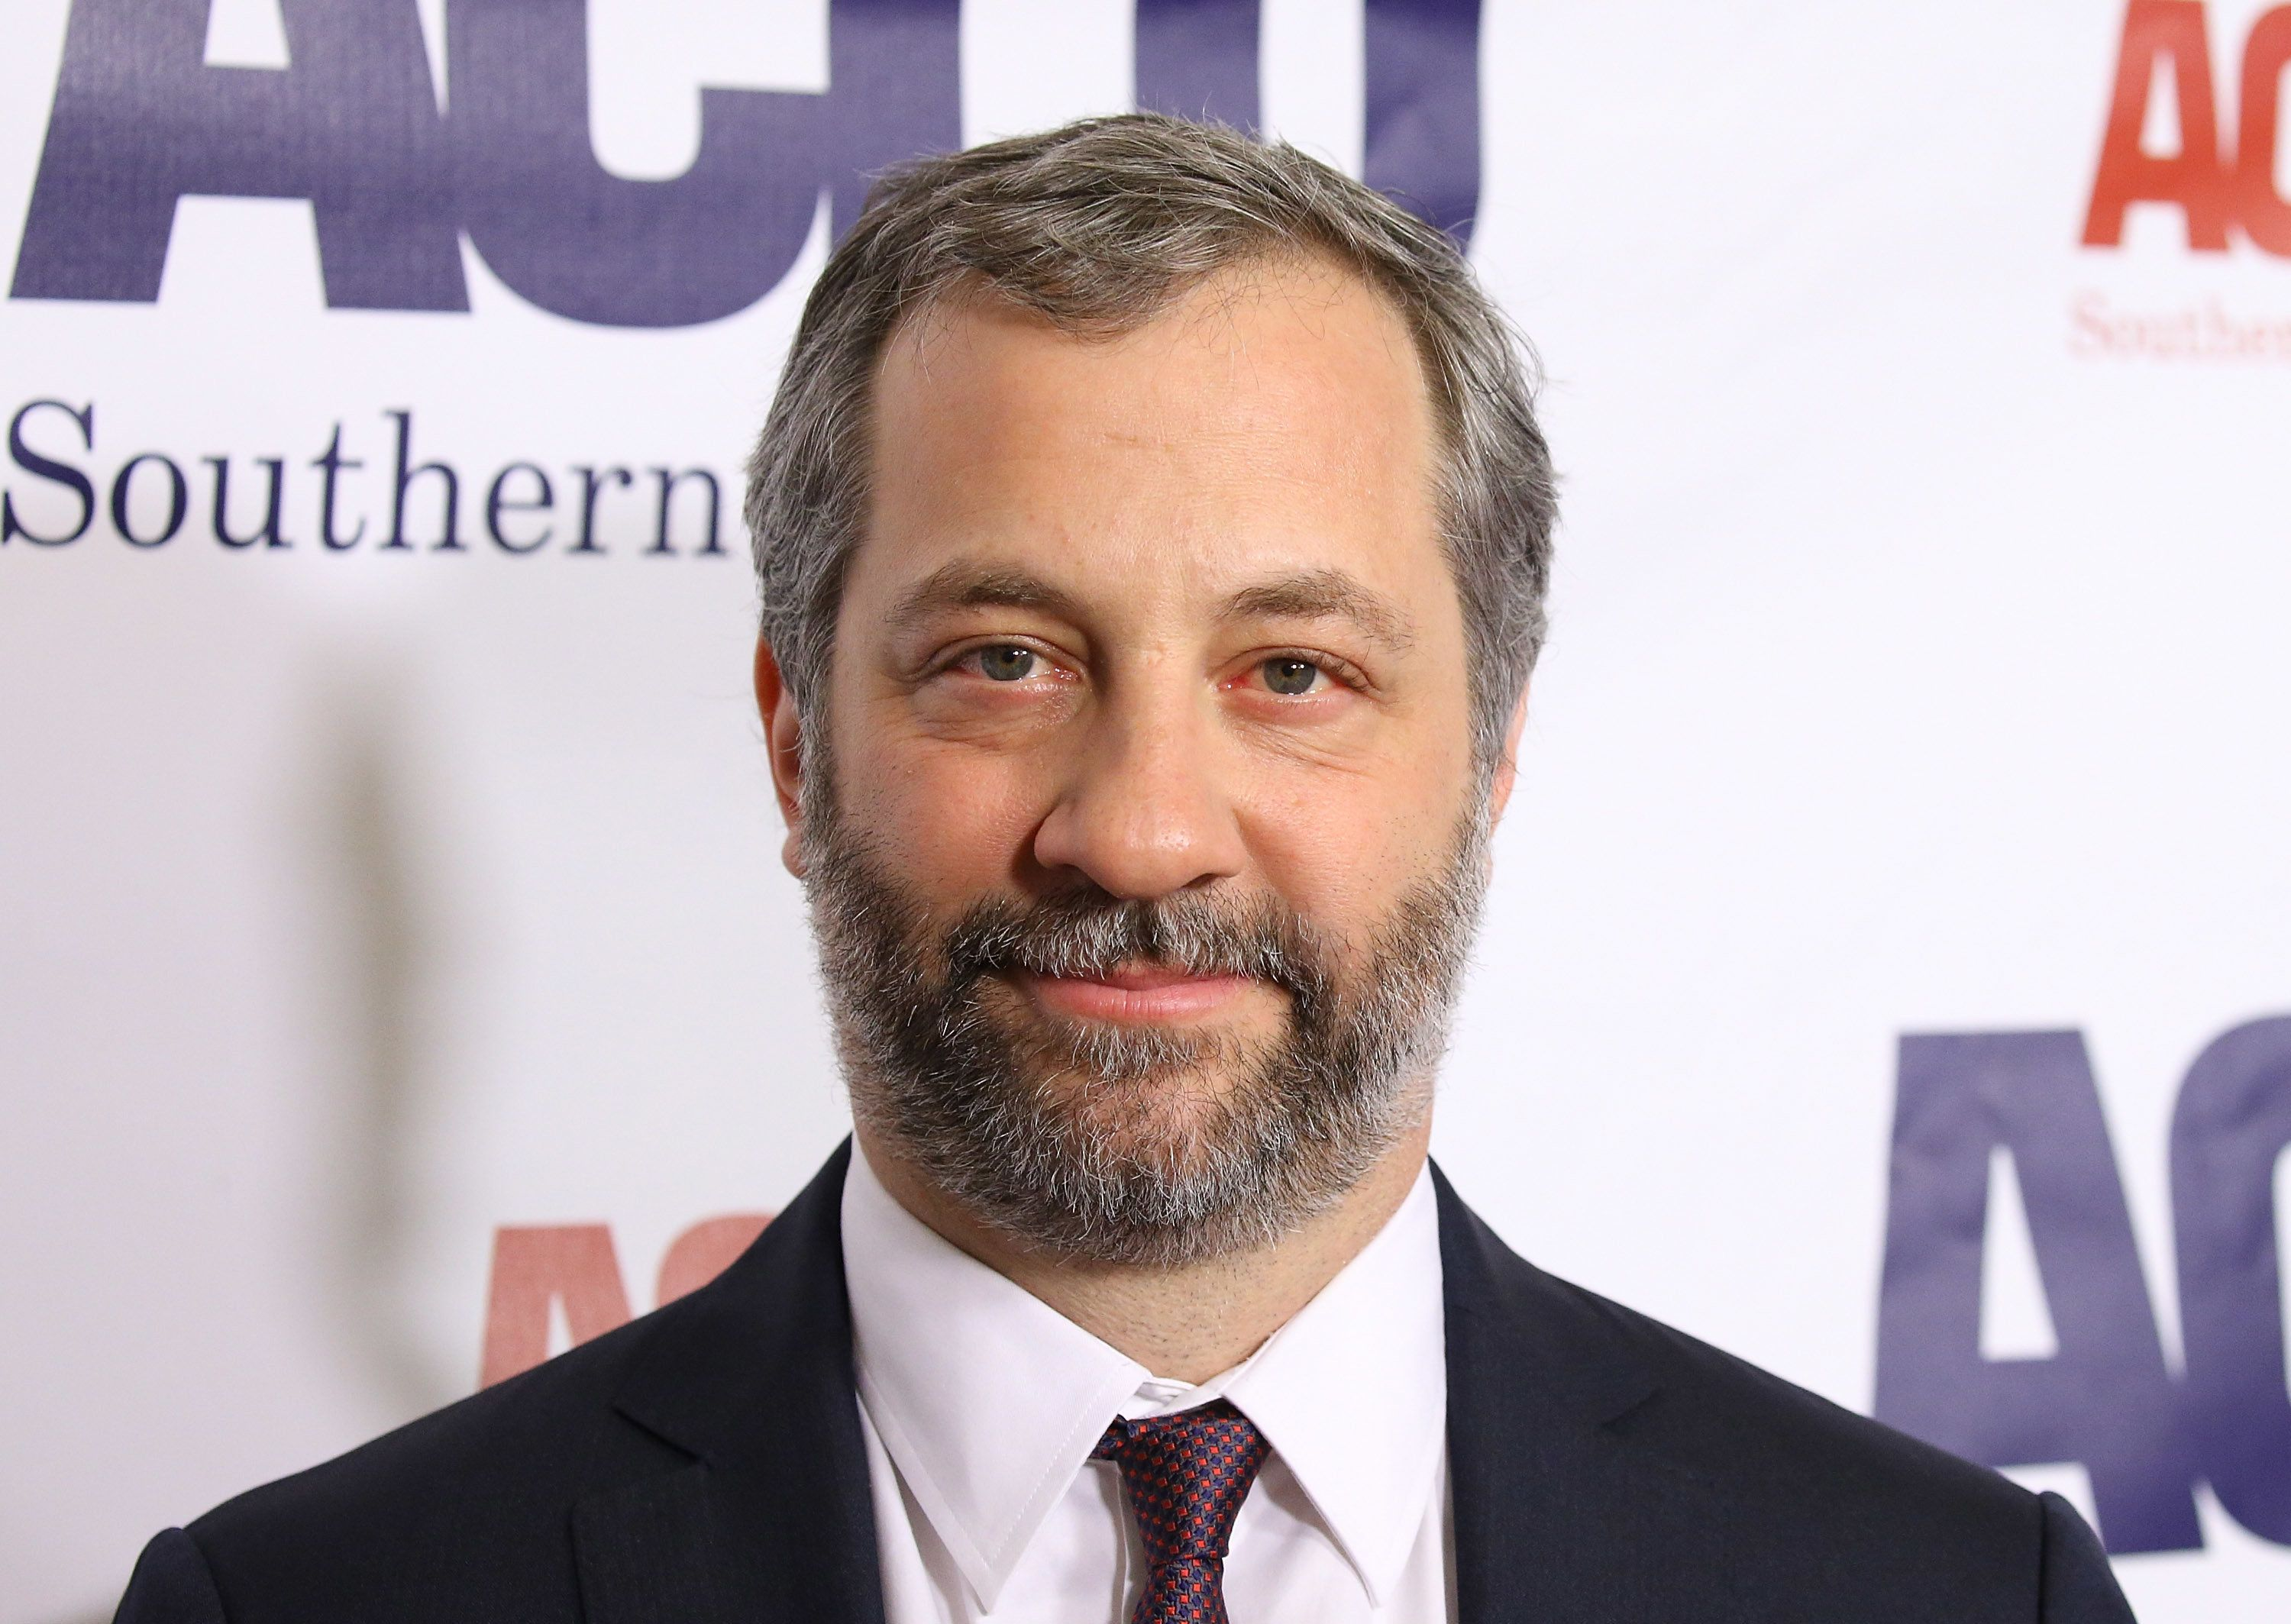 Judd Apatow Dismantles White House Explanation For Trump's Slurred Speech